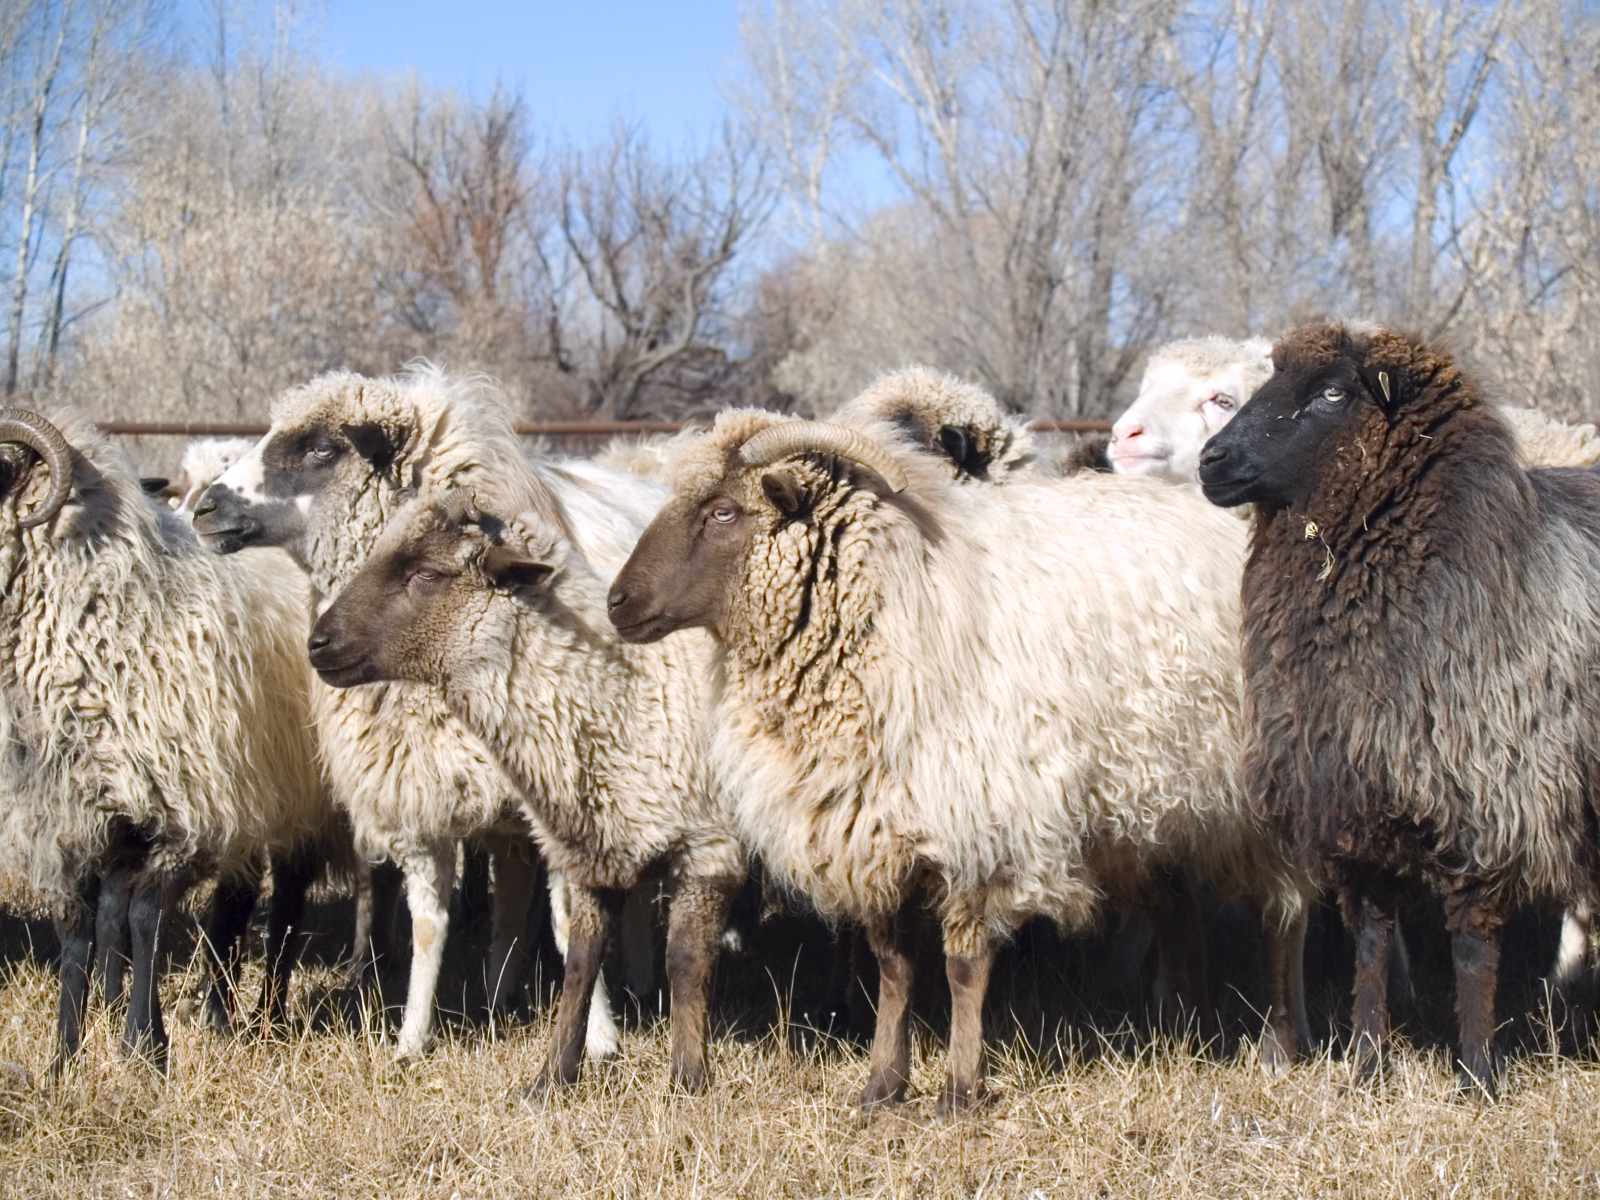 Raising Sheep For Profit: A Cattle Man's View